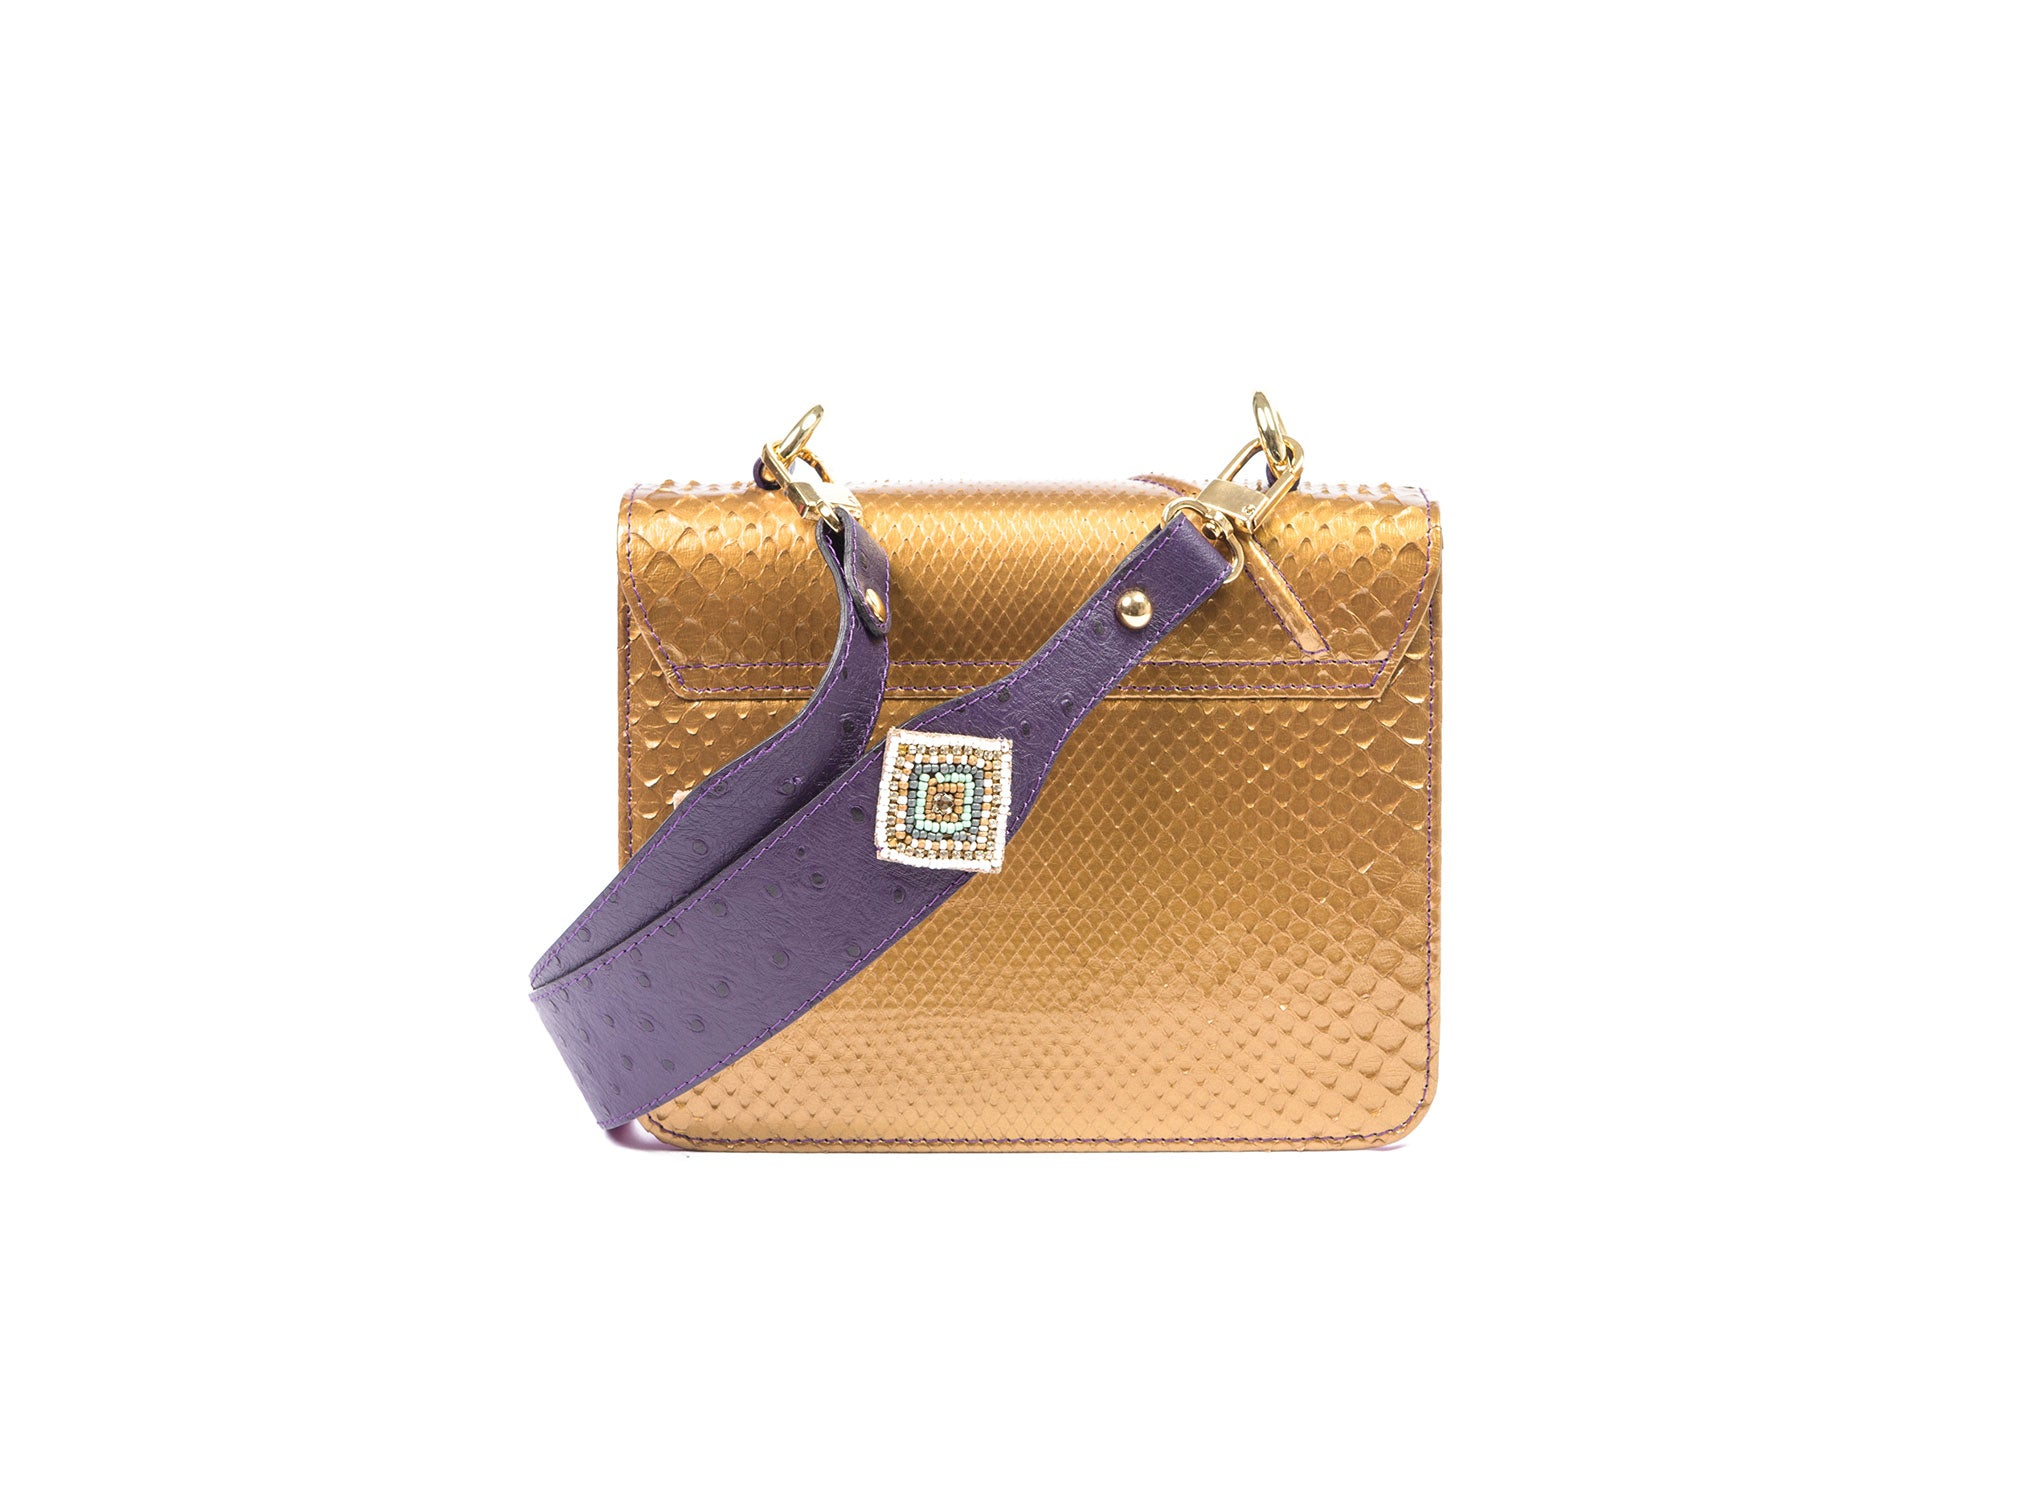 NAILAH LUXURY BAG METALLIC GOLD PHYTON